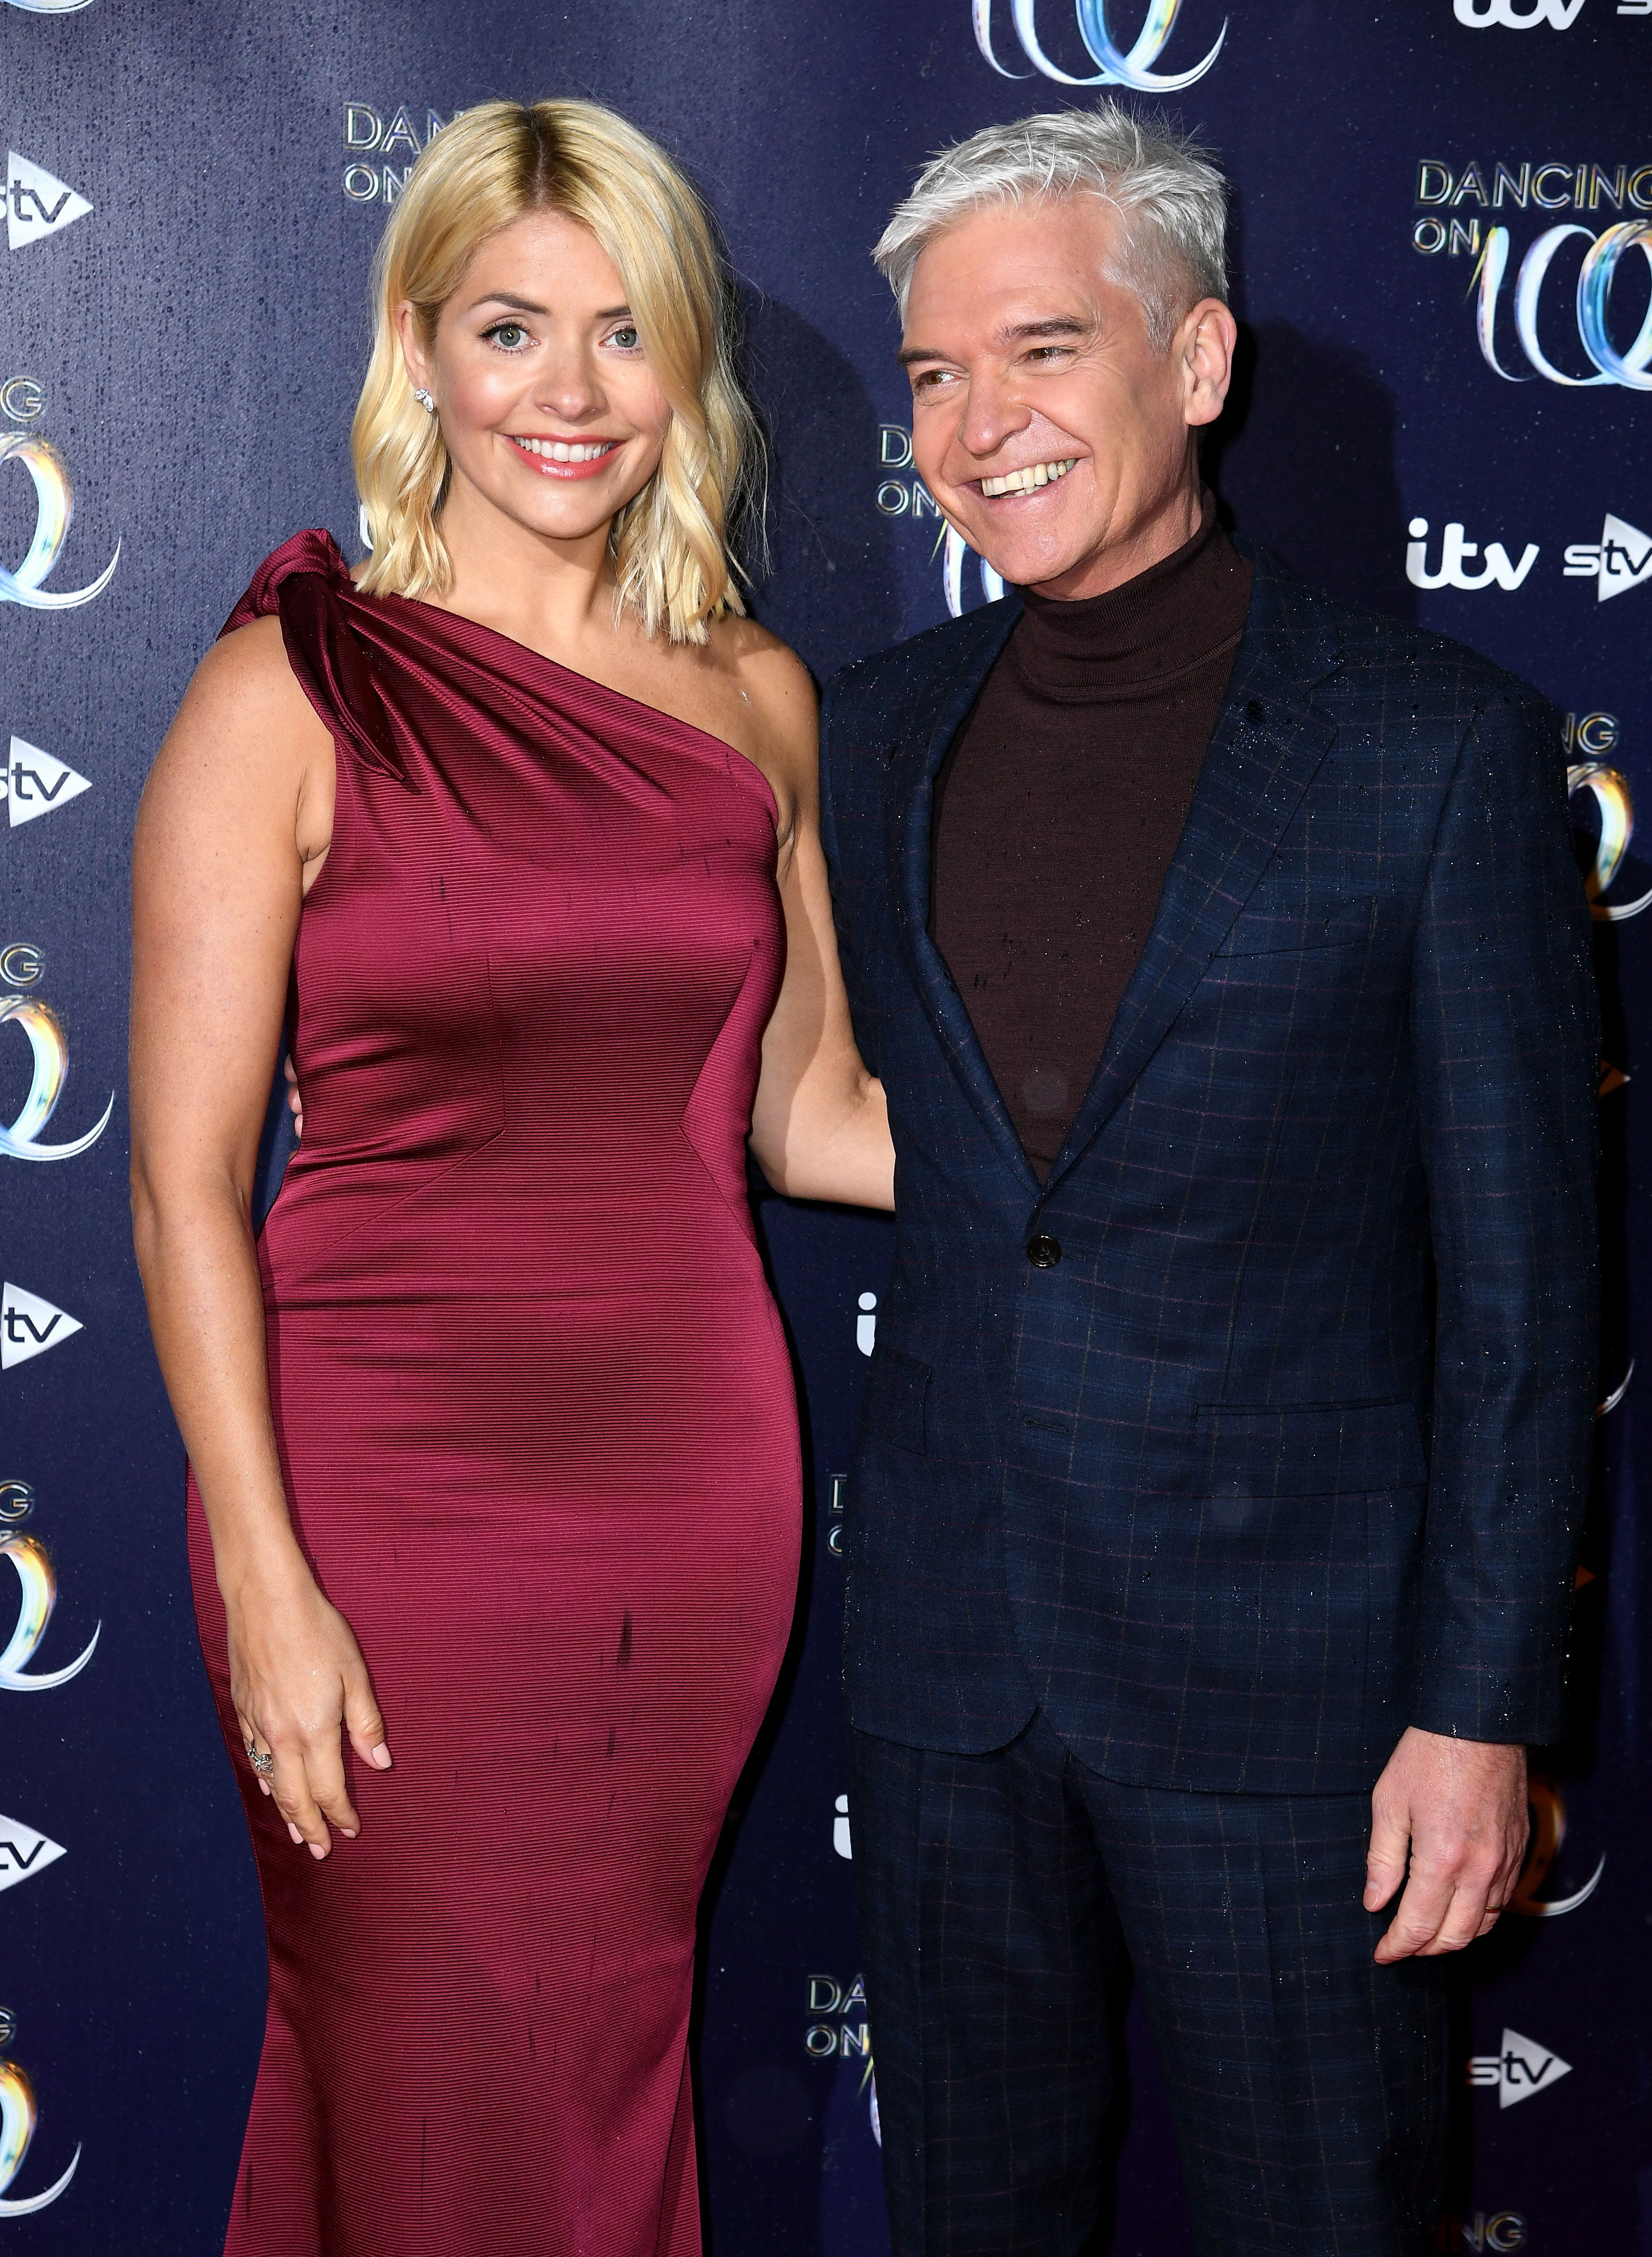 Holly Willoughby and Phillip